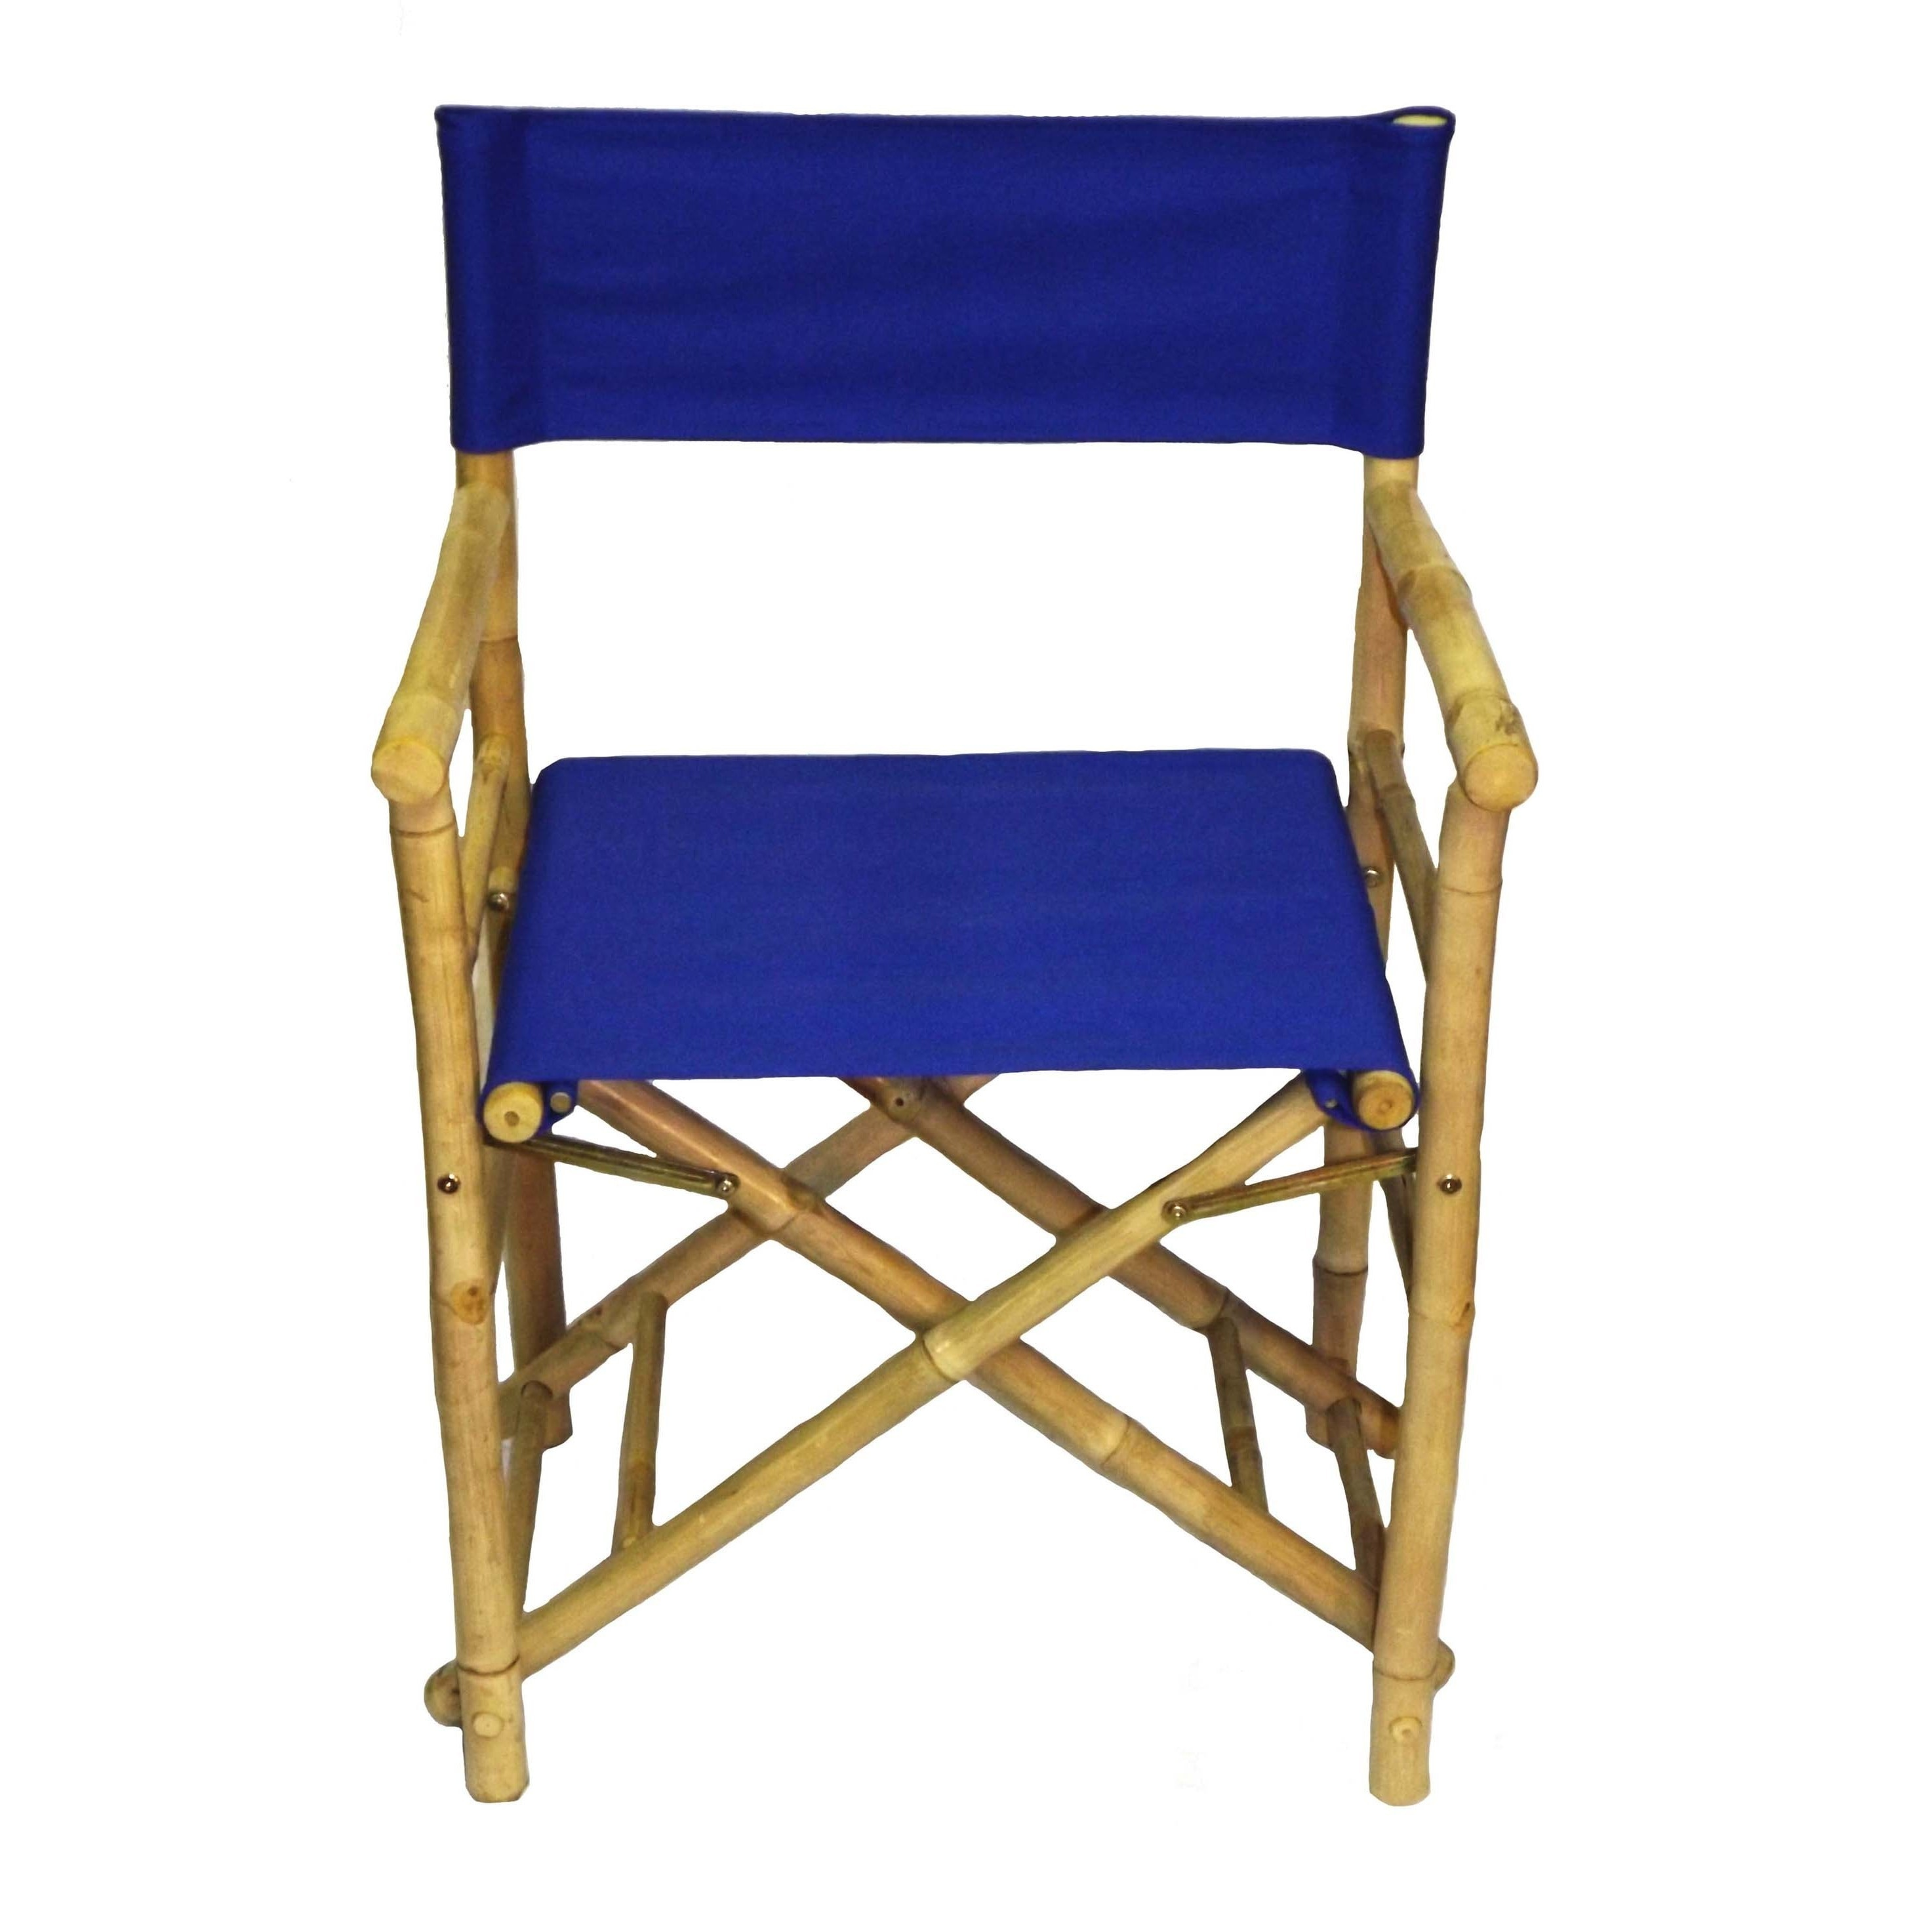 Bamboo 54 Set of 2 Bamboo Director's Chairs with Blue Can...